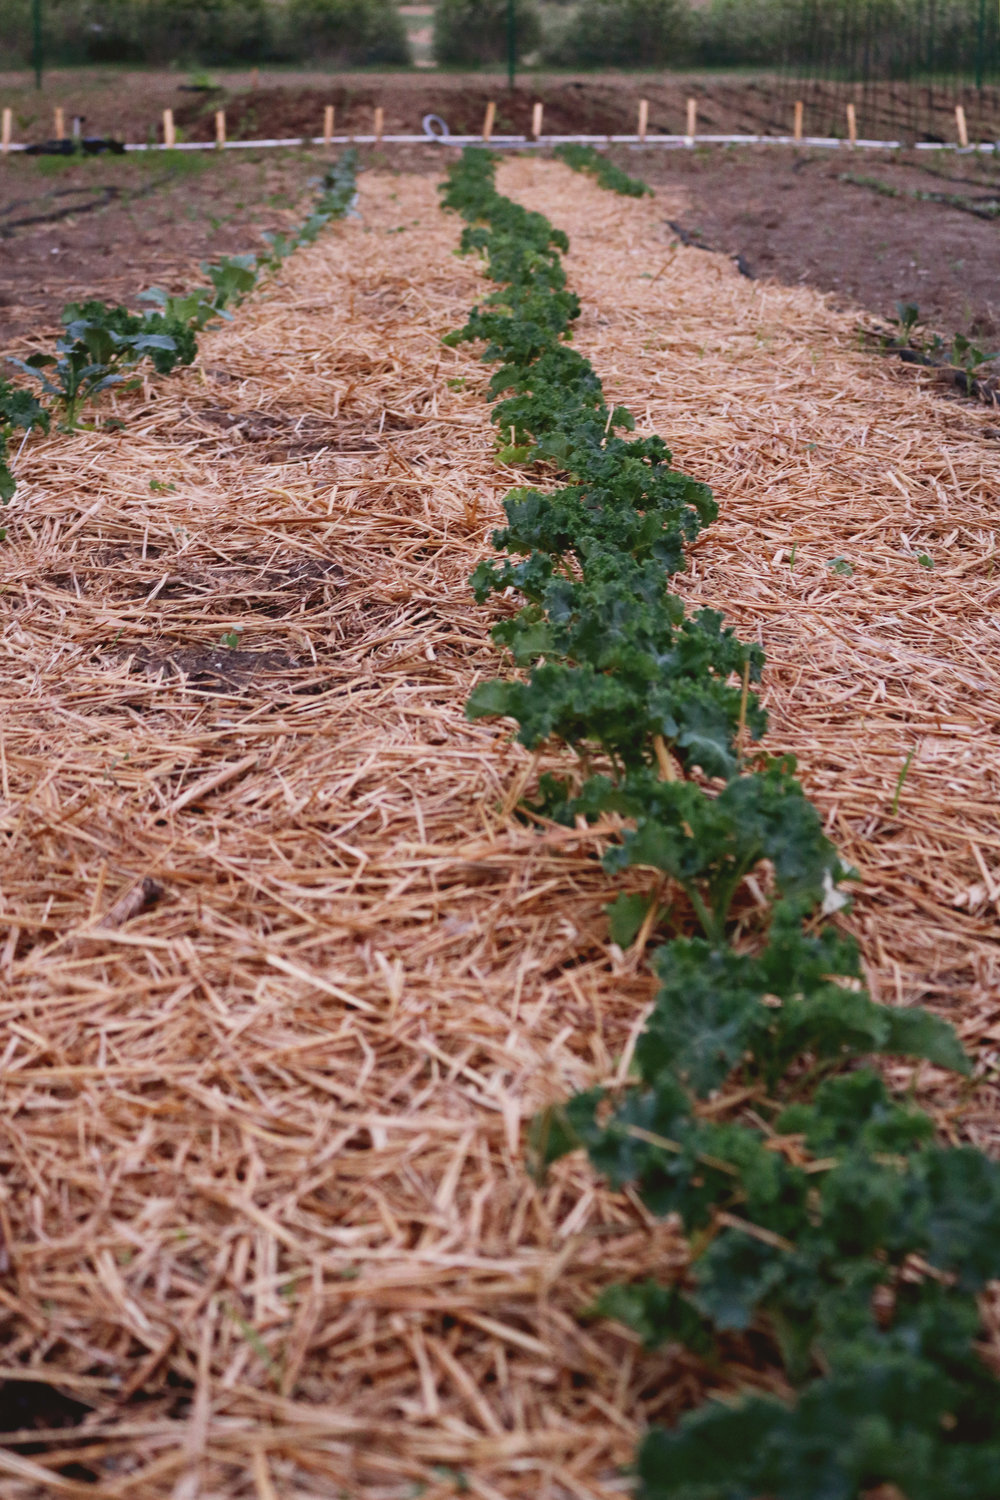 Mulches To Use for No-Till Gardening - Under A Tin Roof Blog